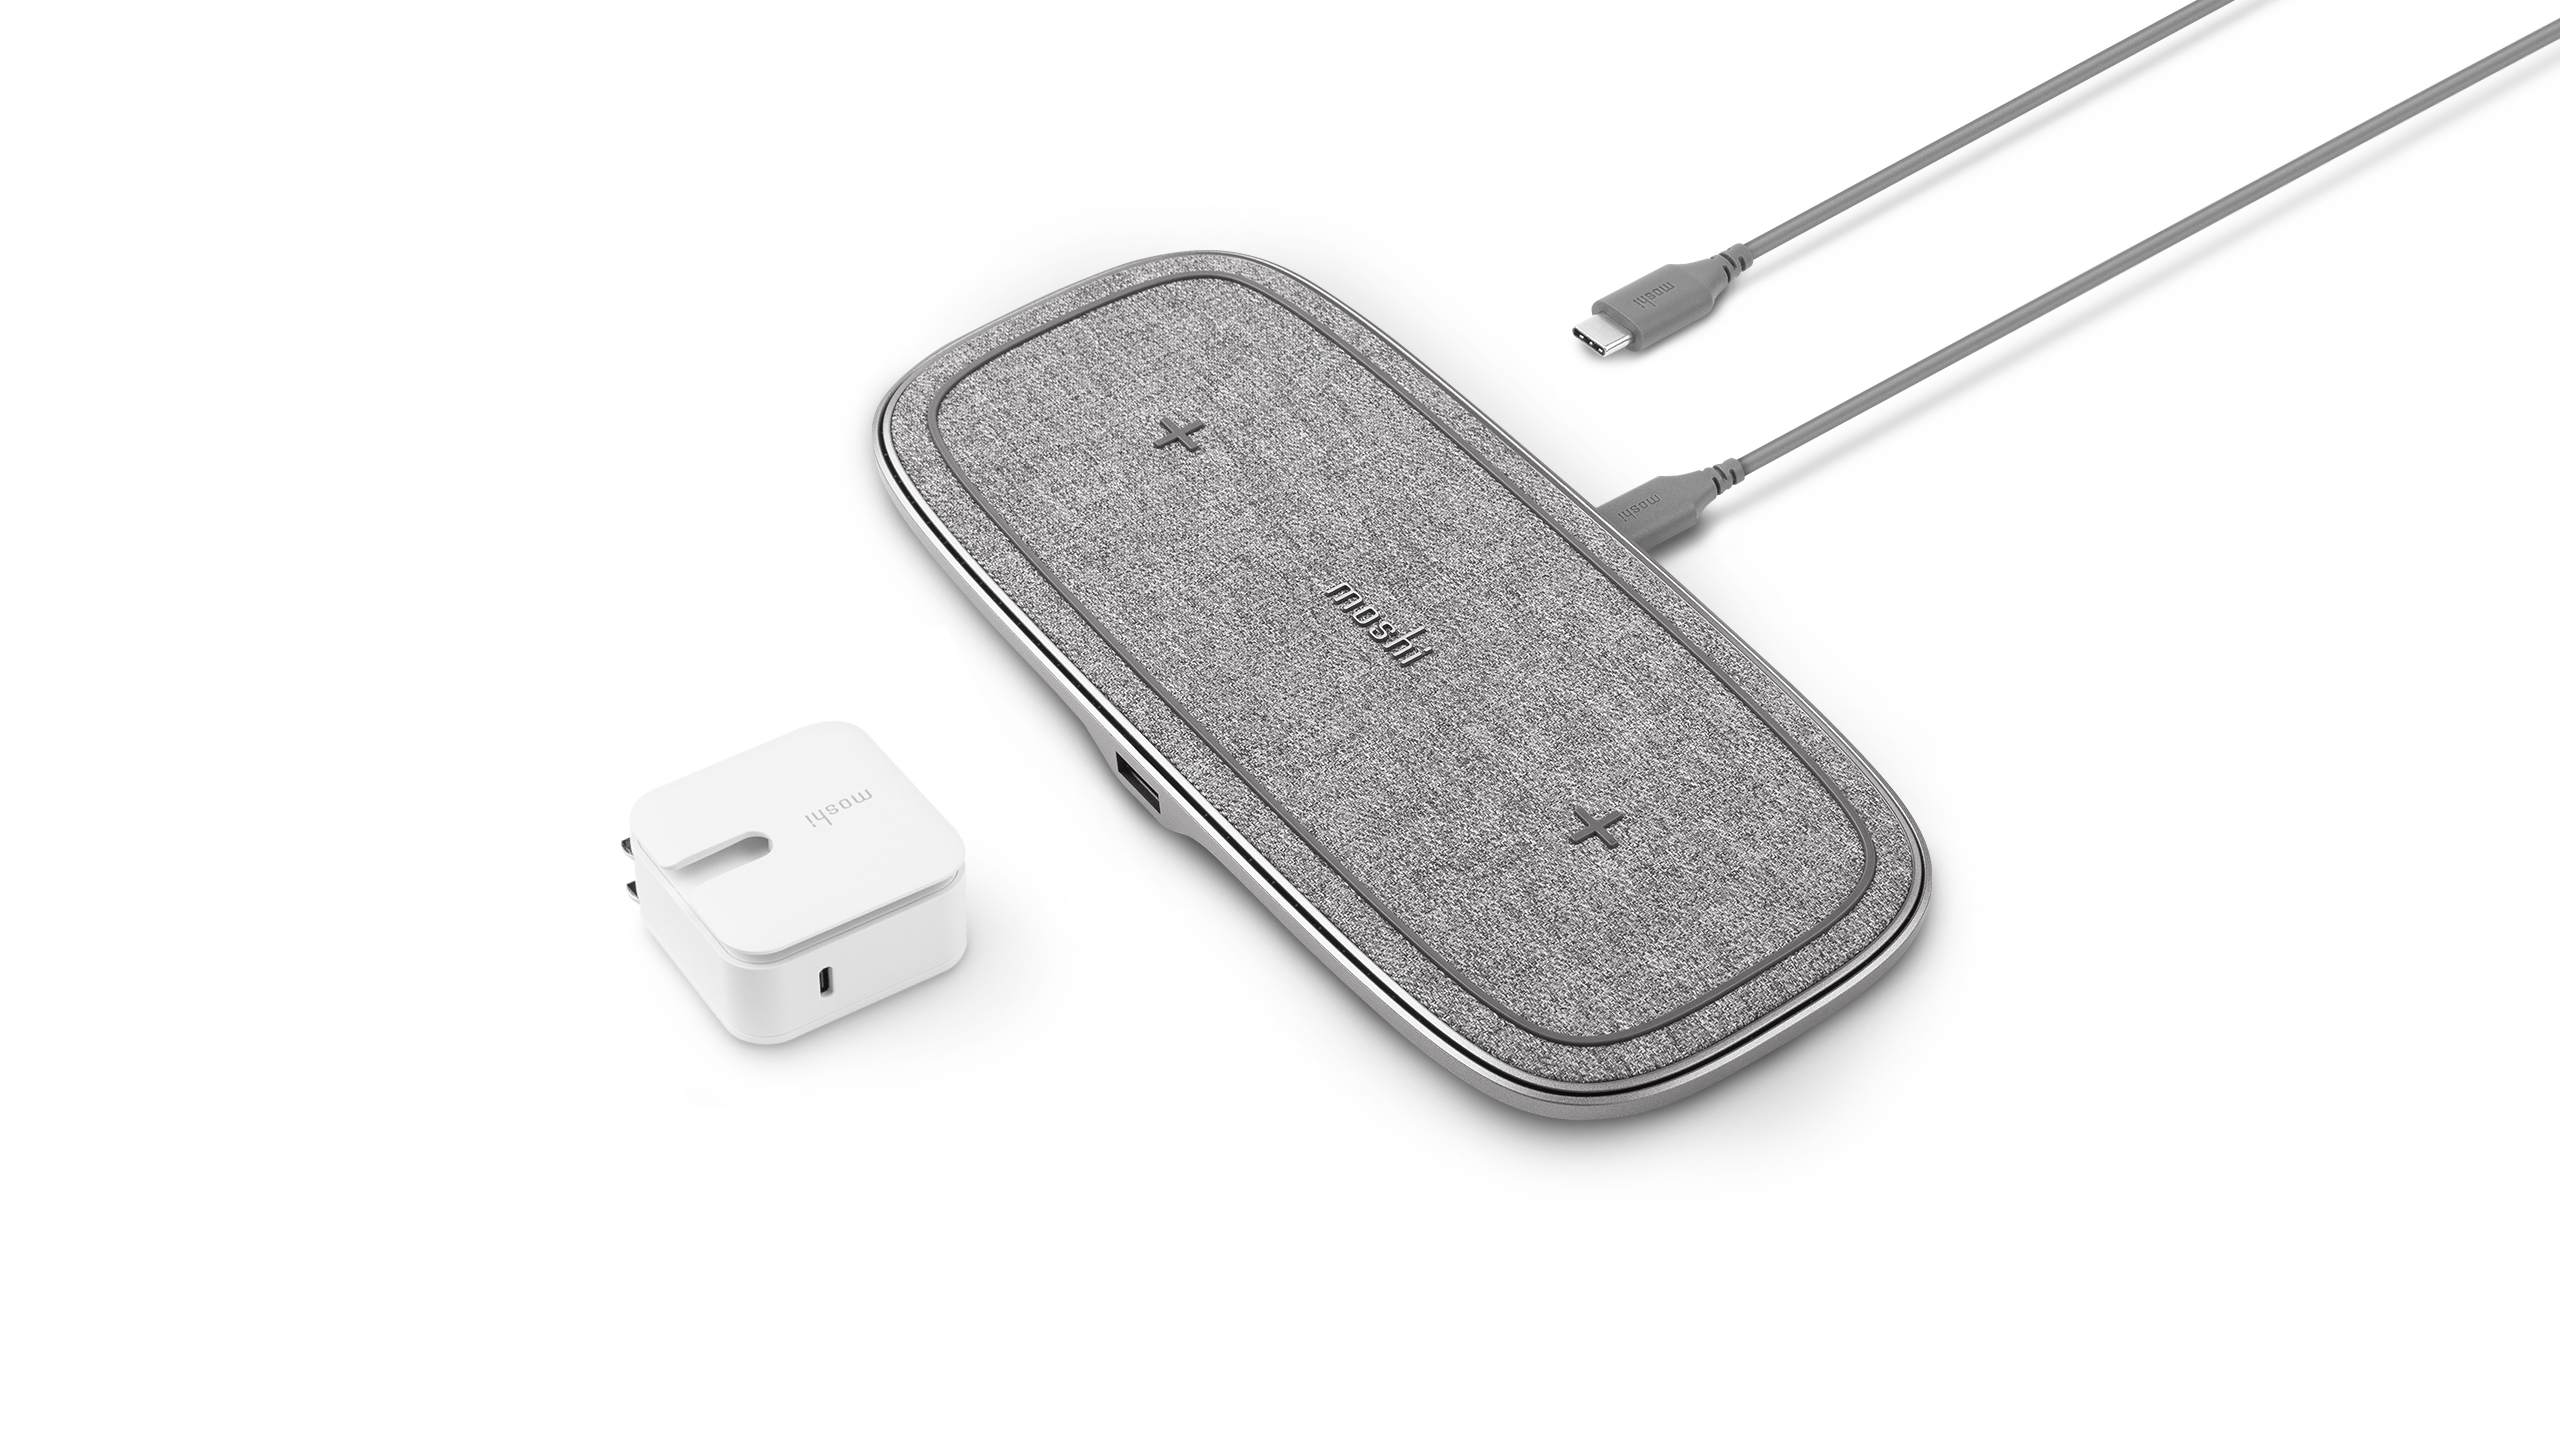 Sette Q dual wireless charging pad 15 W EPP with power adapter-image